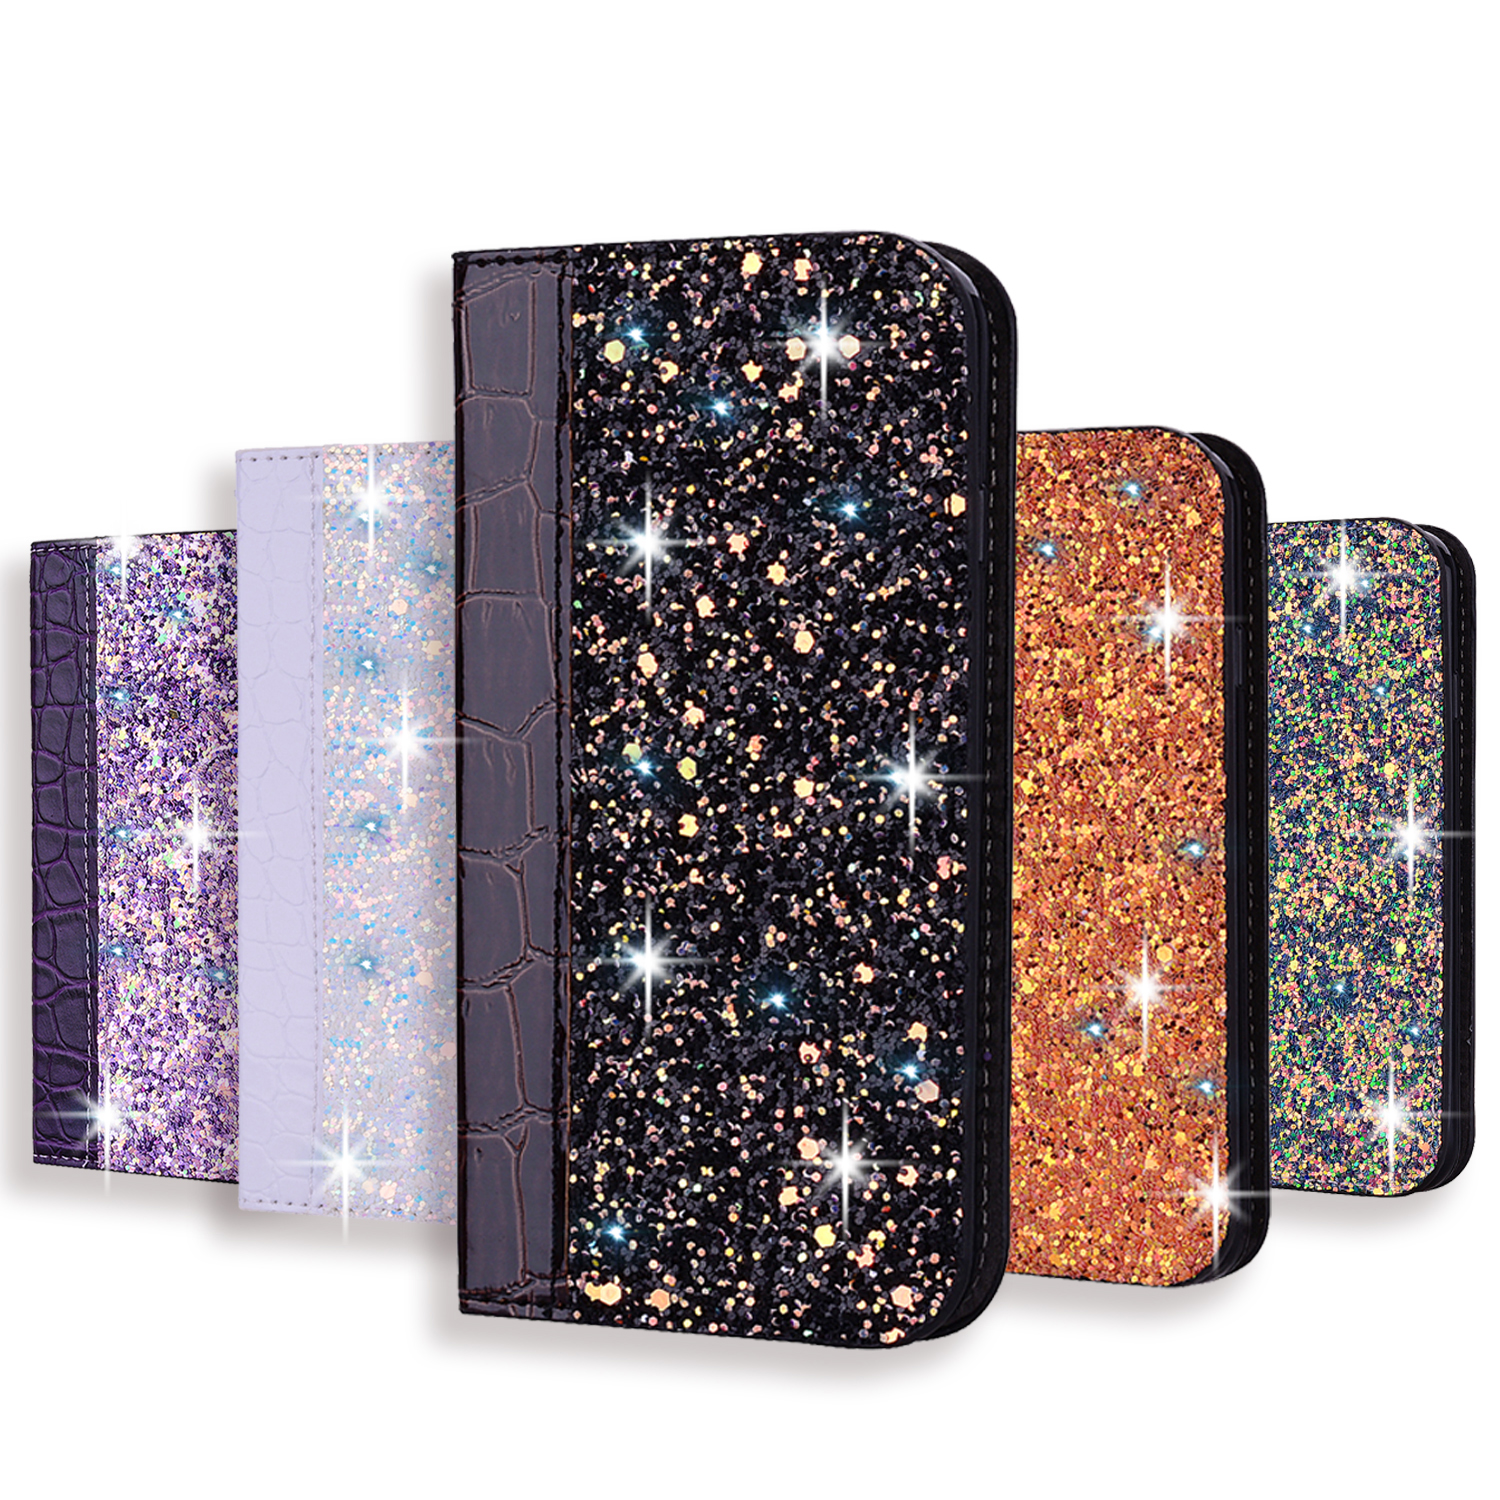 Glitter Bling <font><b>Case</b></font> For Huawei <font><b>Mate</b></font> 10 <font><b>20</b></font> P20 P30 <font><b>Lite</b></font> Pro Honor 10 9 <font><b>Lite</b></font> 7x Y6 Y7 Y9 P Smart+ 2019 Leather <font><b>Flip</b></font> Book <font><b>Case</b></font> Coque image